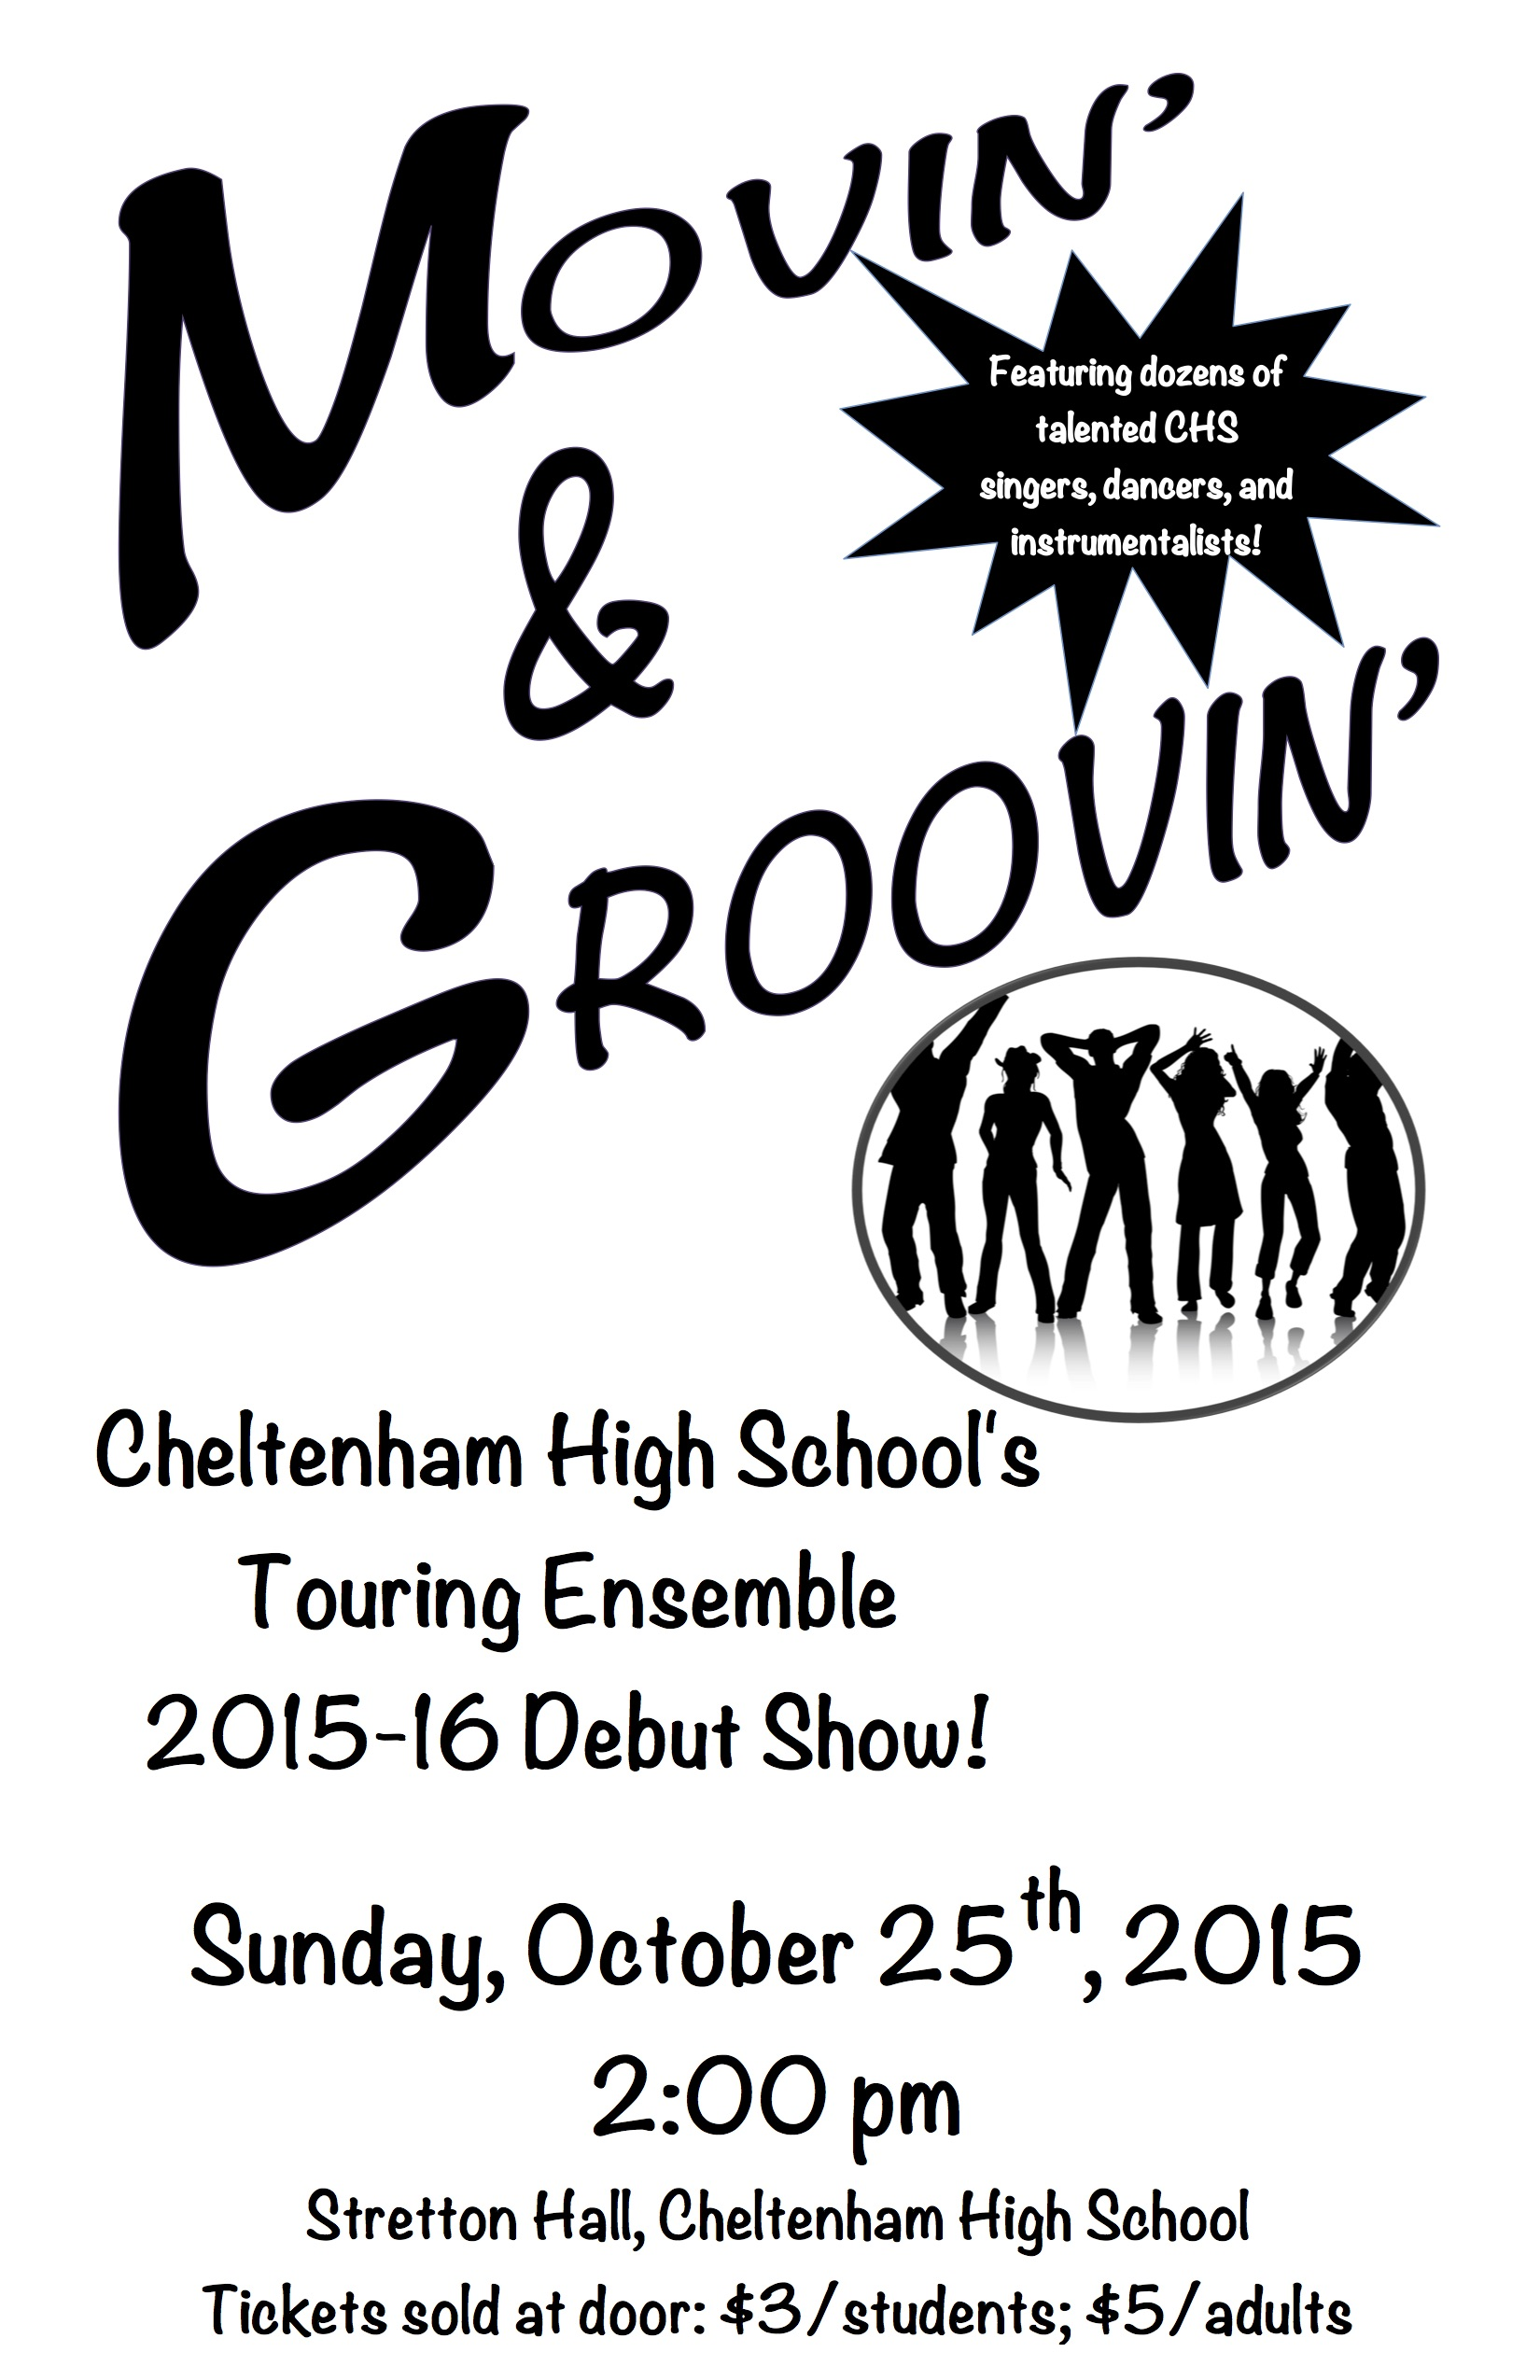 Touring Ensemble Show this Sunday, October 25, 2pm